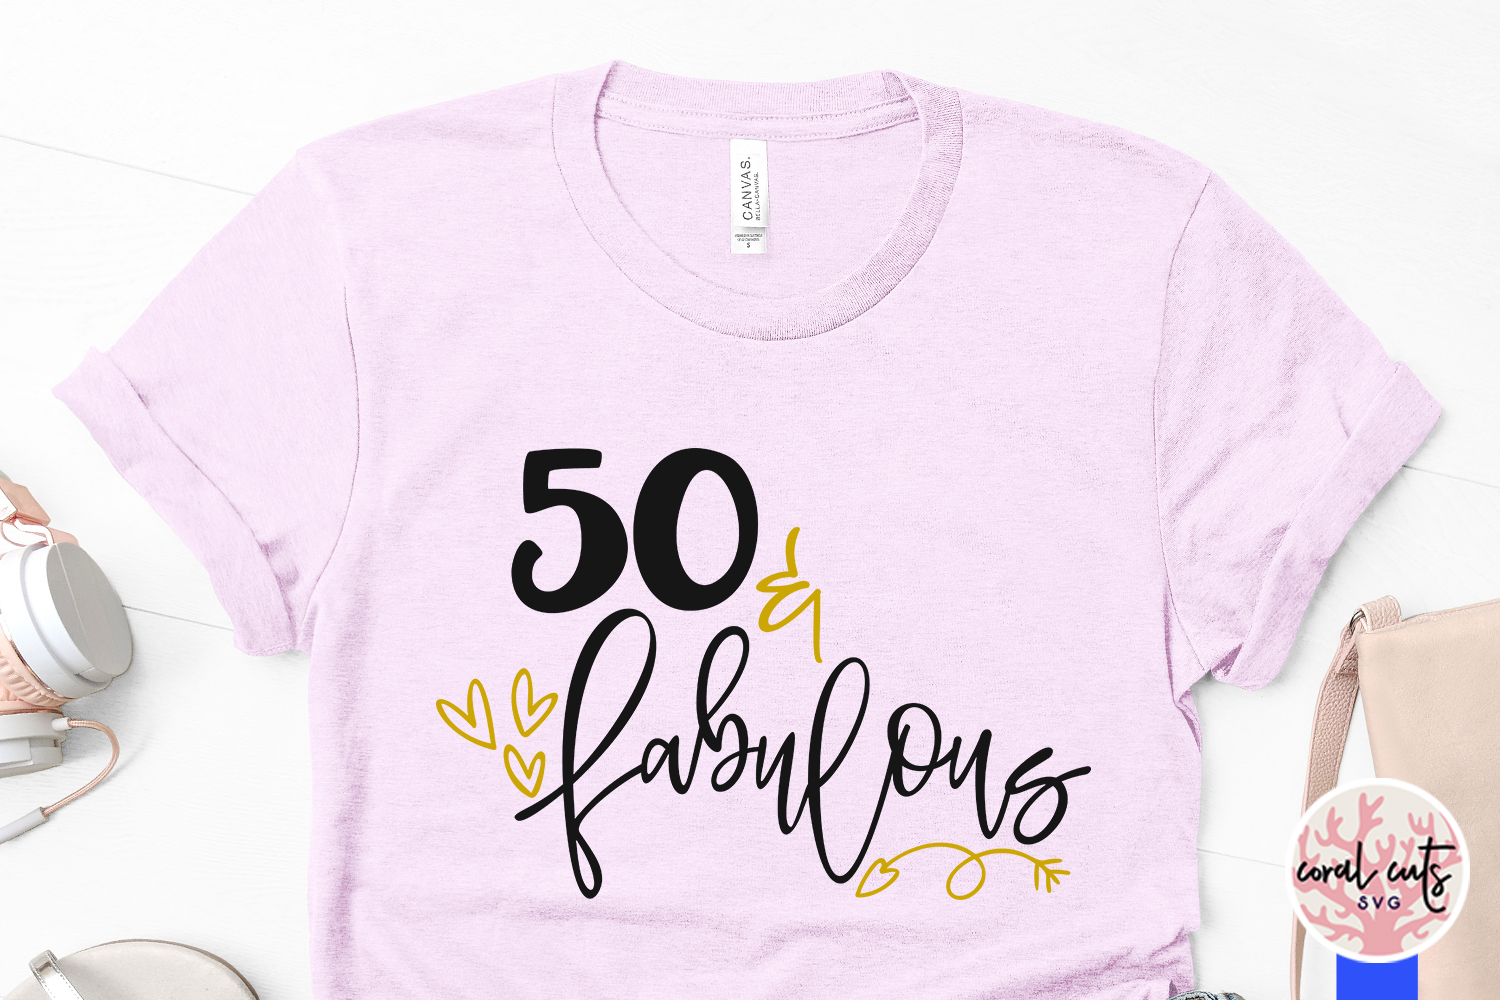 50 & Fabulous - Birthday SVG EPS DXF PNG Cutting File example image 3